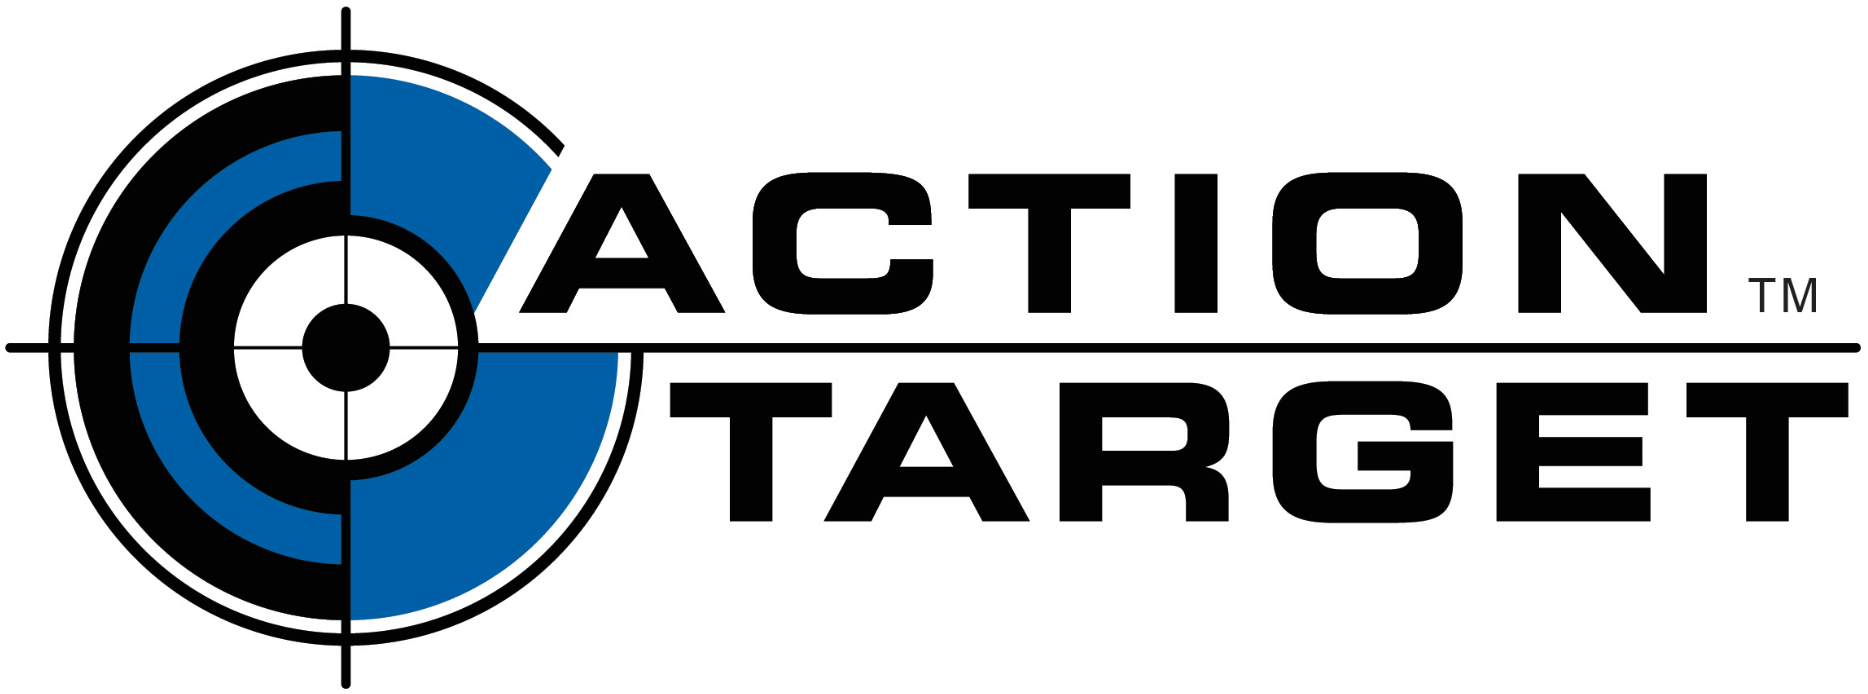 Action-Target.png